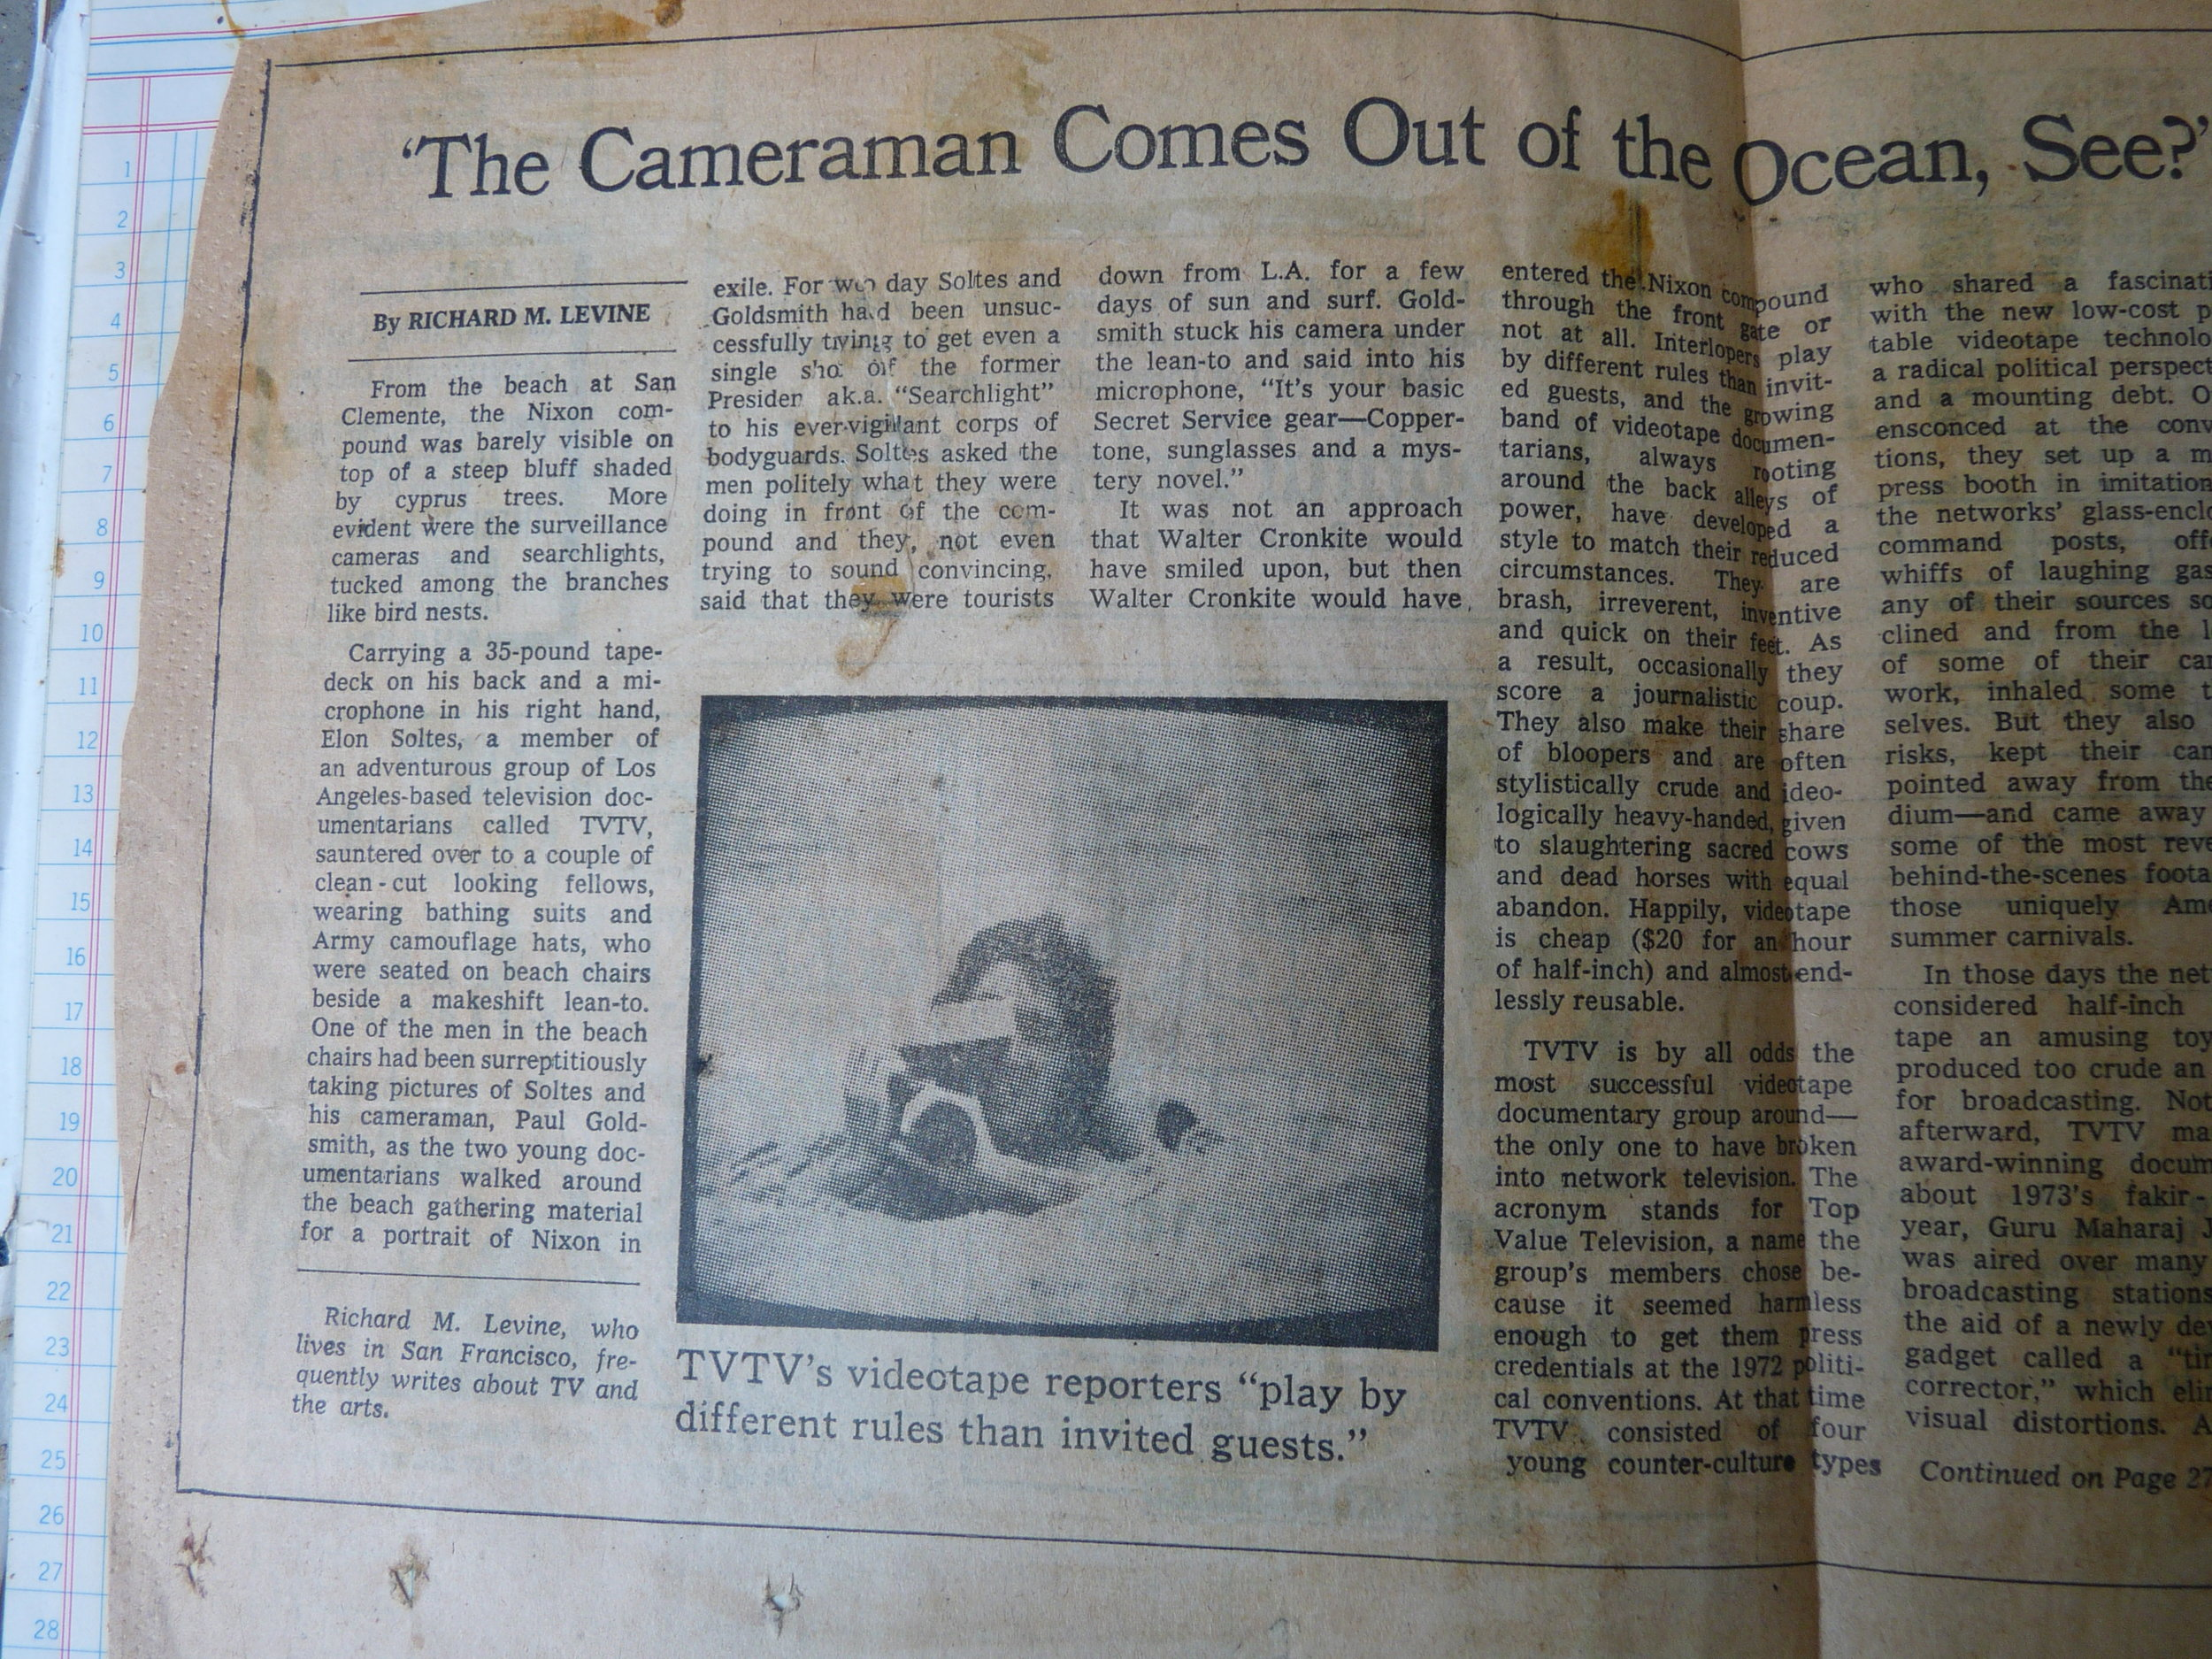 NYTimes article about TVTV. We had gone down to San Clemente to try to ambush ex-president Nixon (he had just resigned and fled west).